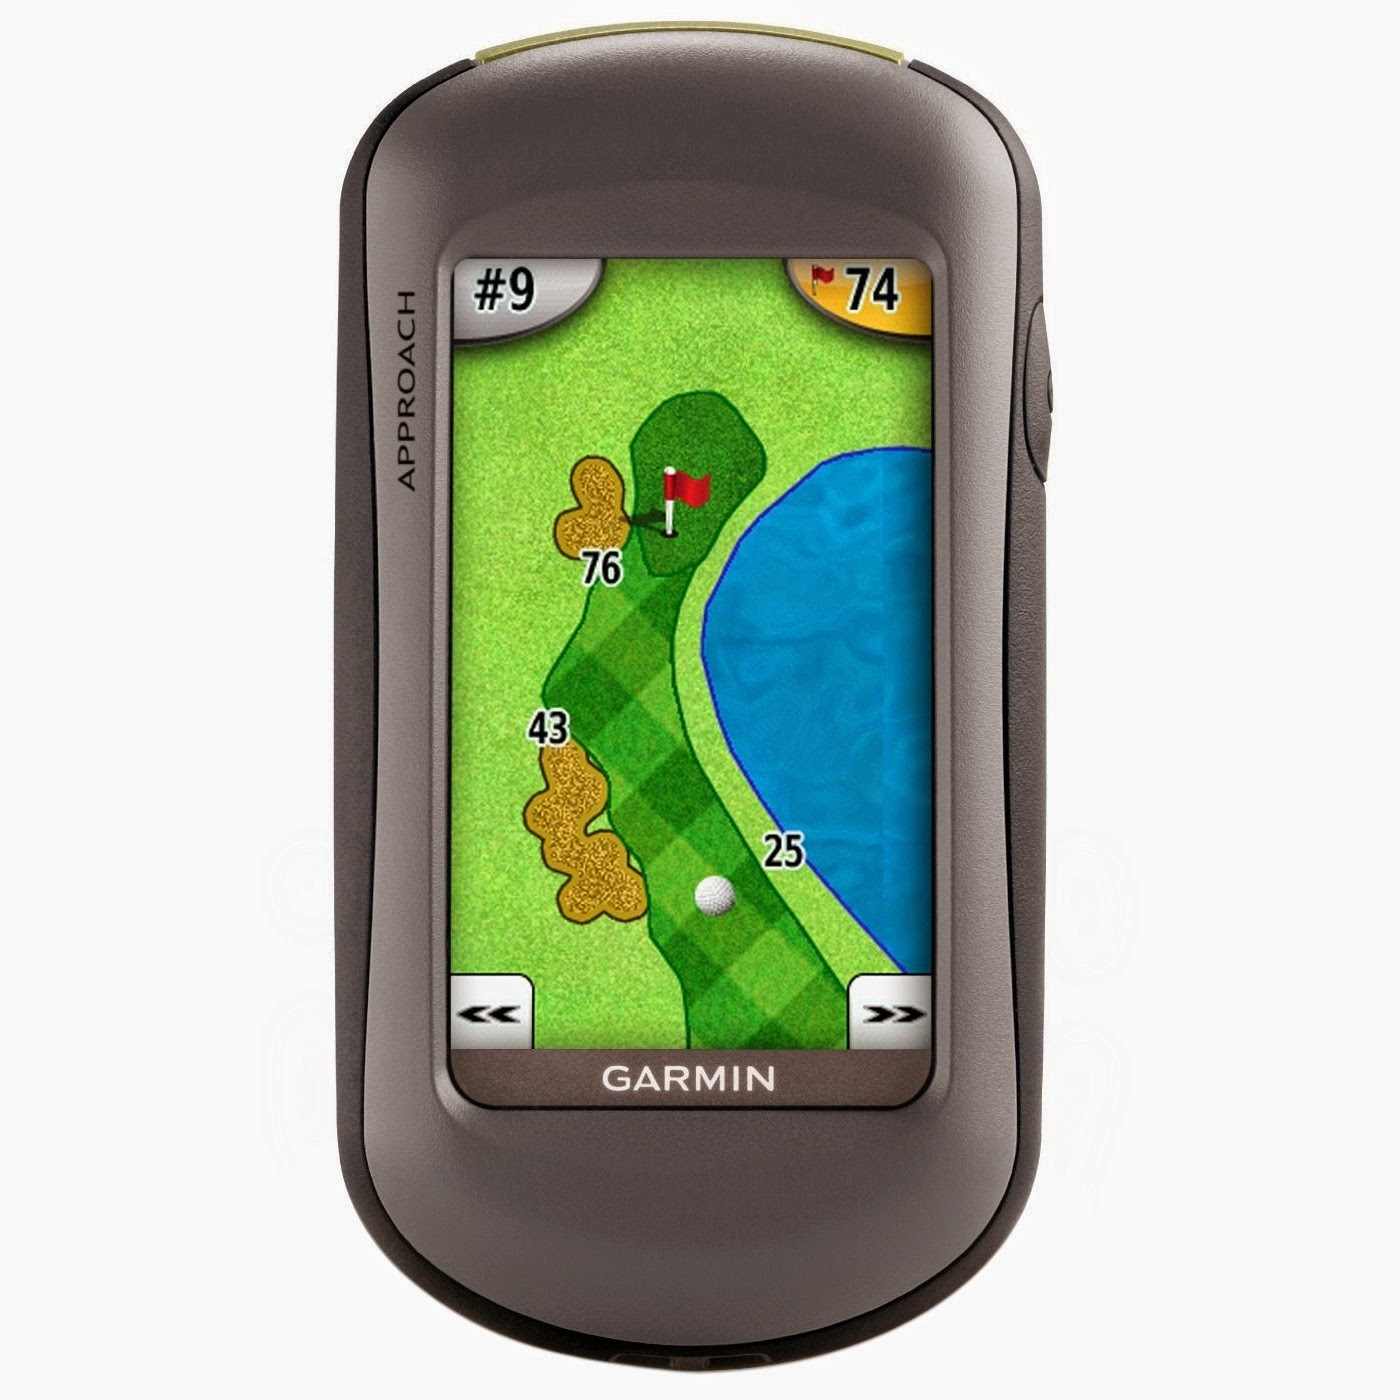 Garmin Approach G5 Waterproof Touchscreen Golf GPS, review, measures exact yardage to all fairways, hazards and greens, tracks club distance averages, records putts per round, keep track of up to 4 players scores